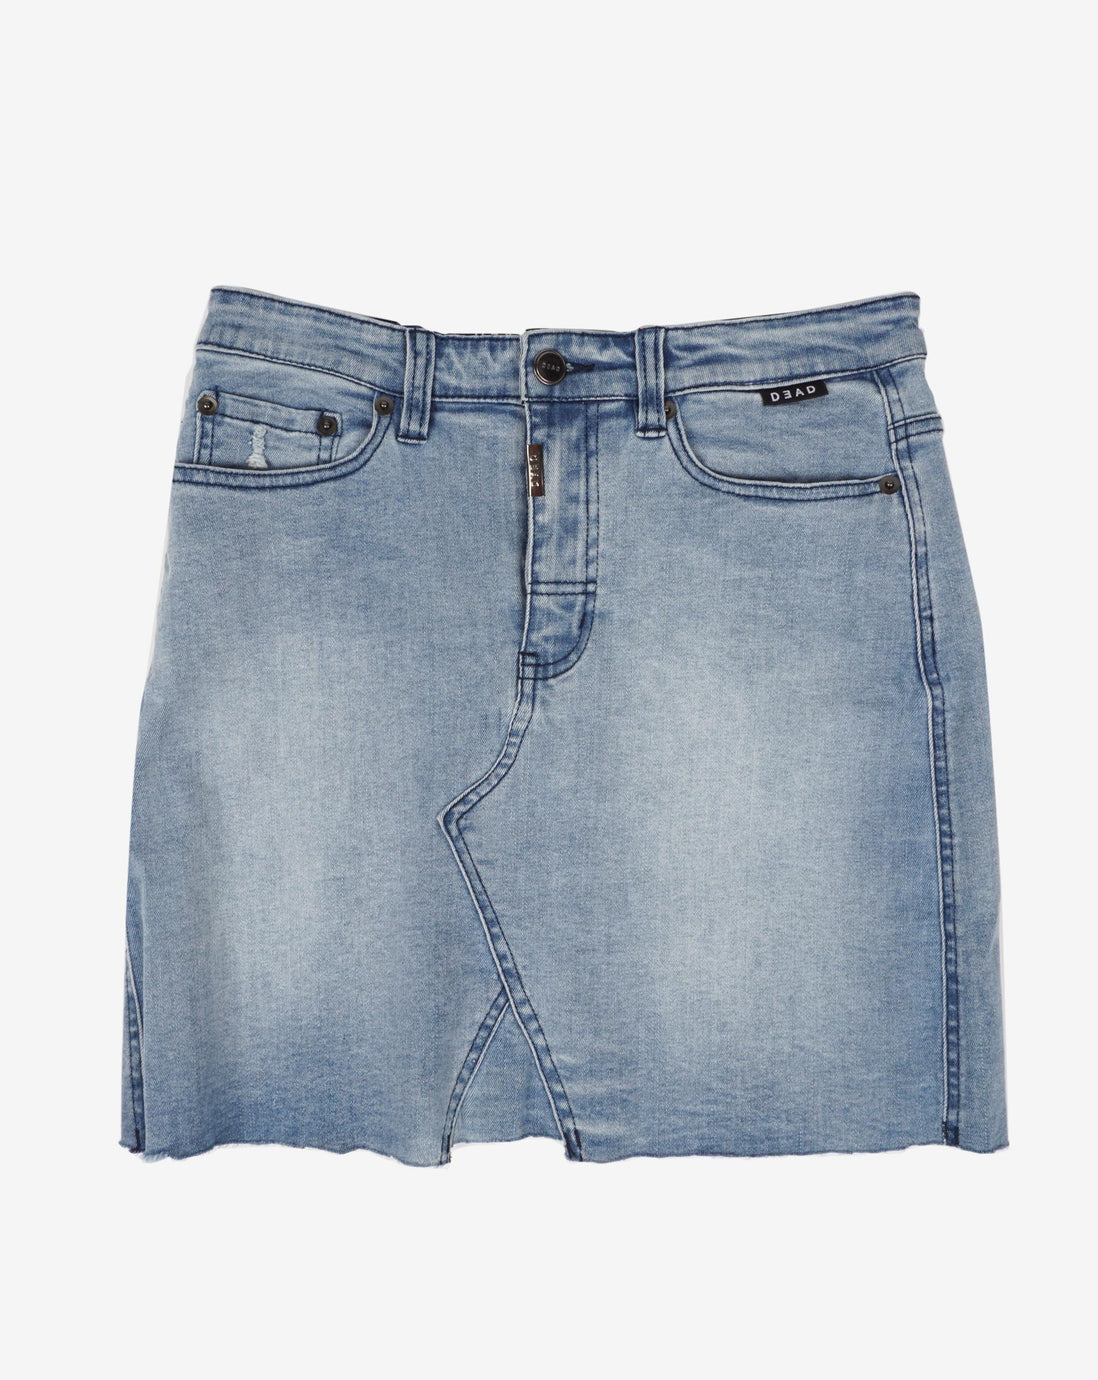 MID RISE RAW SKIRT - INDIGO